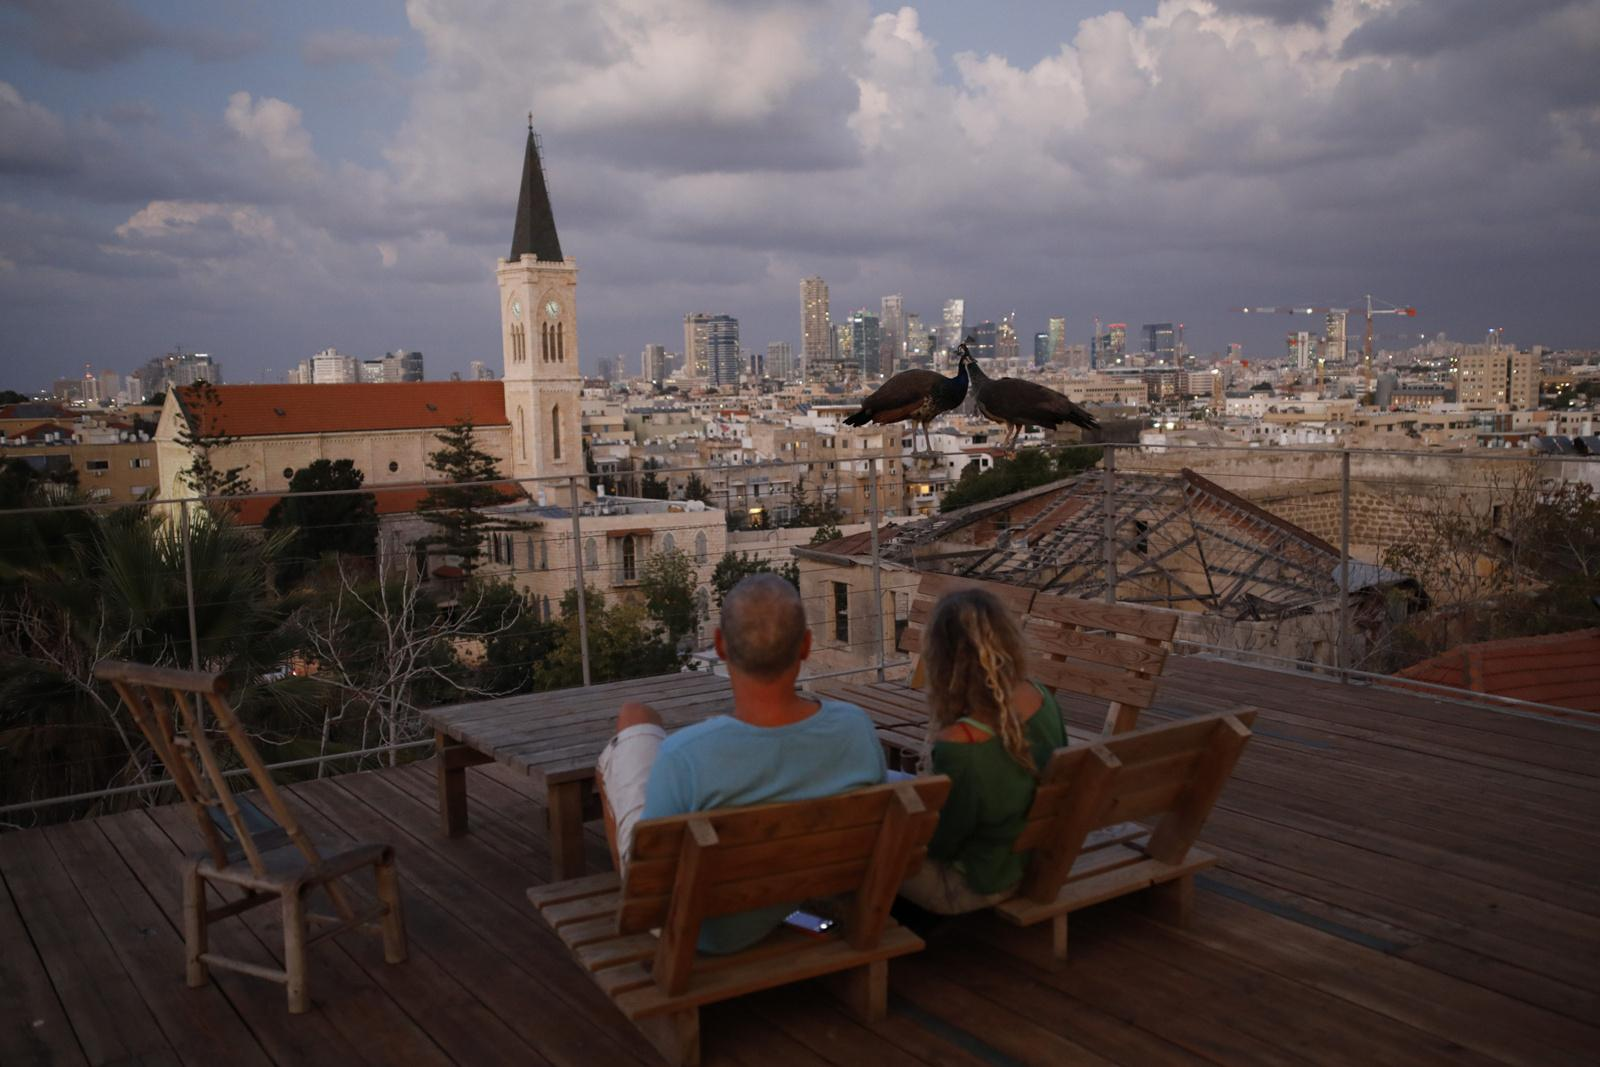 Arieh and Orna Ramot (L-R) watch peacocks on their rooftop, that often find their way to their house after their neighbour feeds them, November 20, 2017, Yafo, Tel Aviv, Israel.